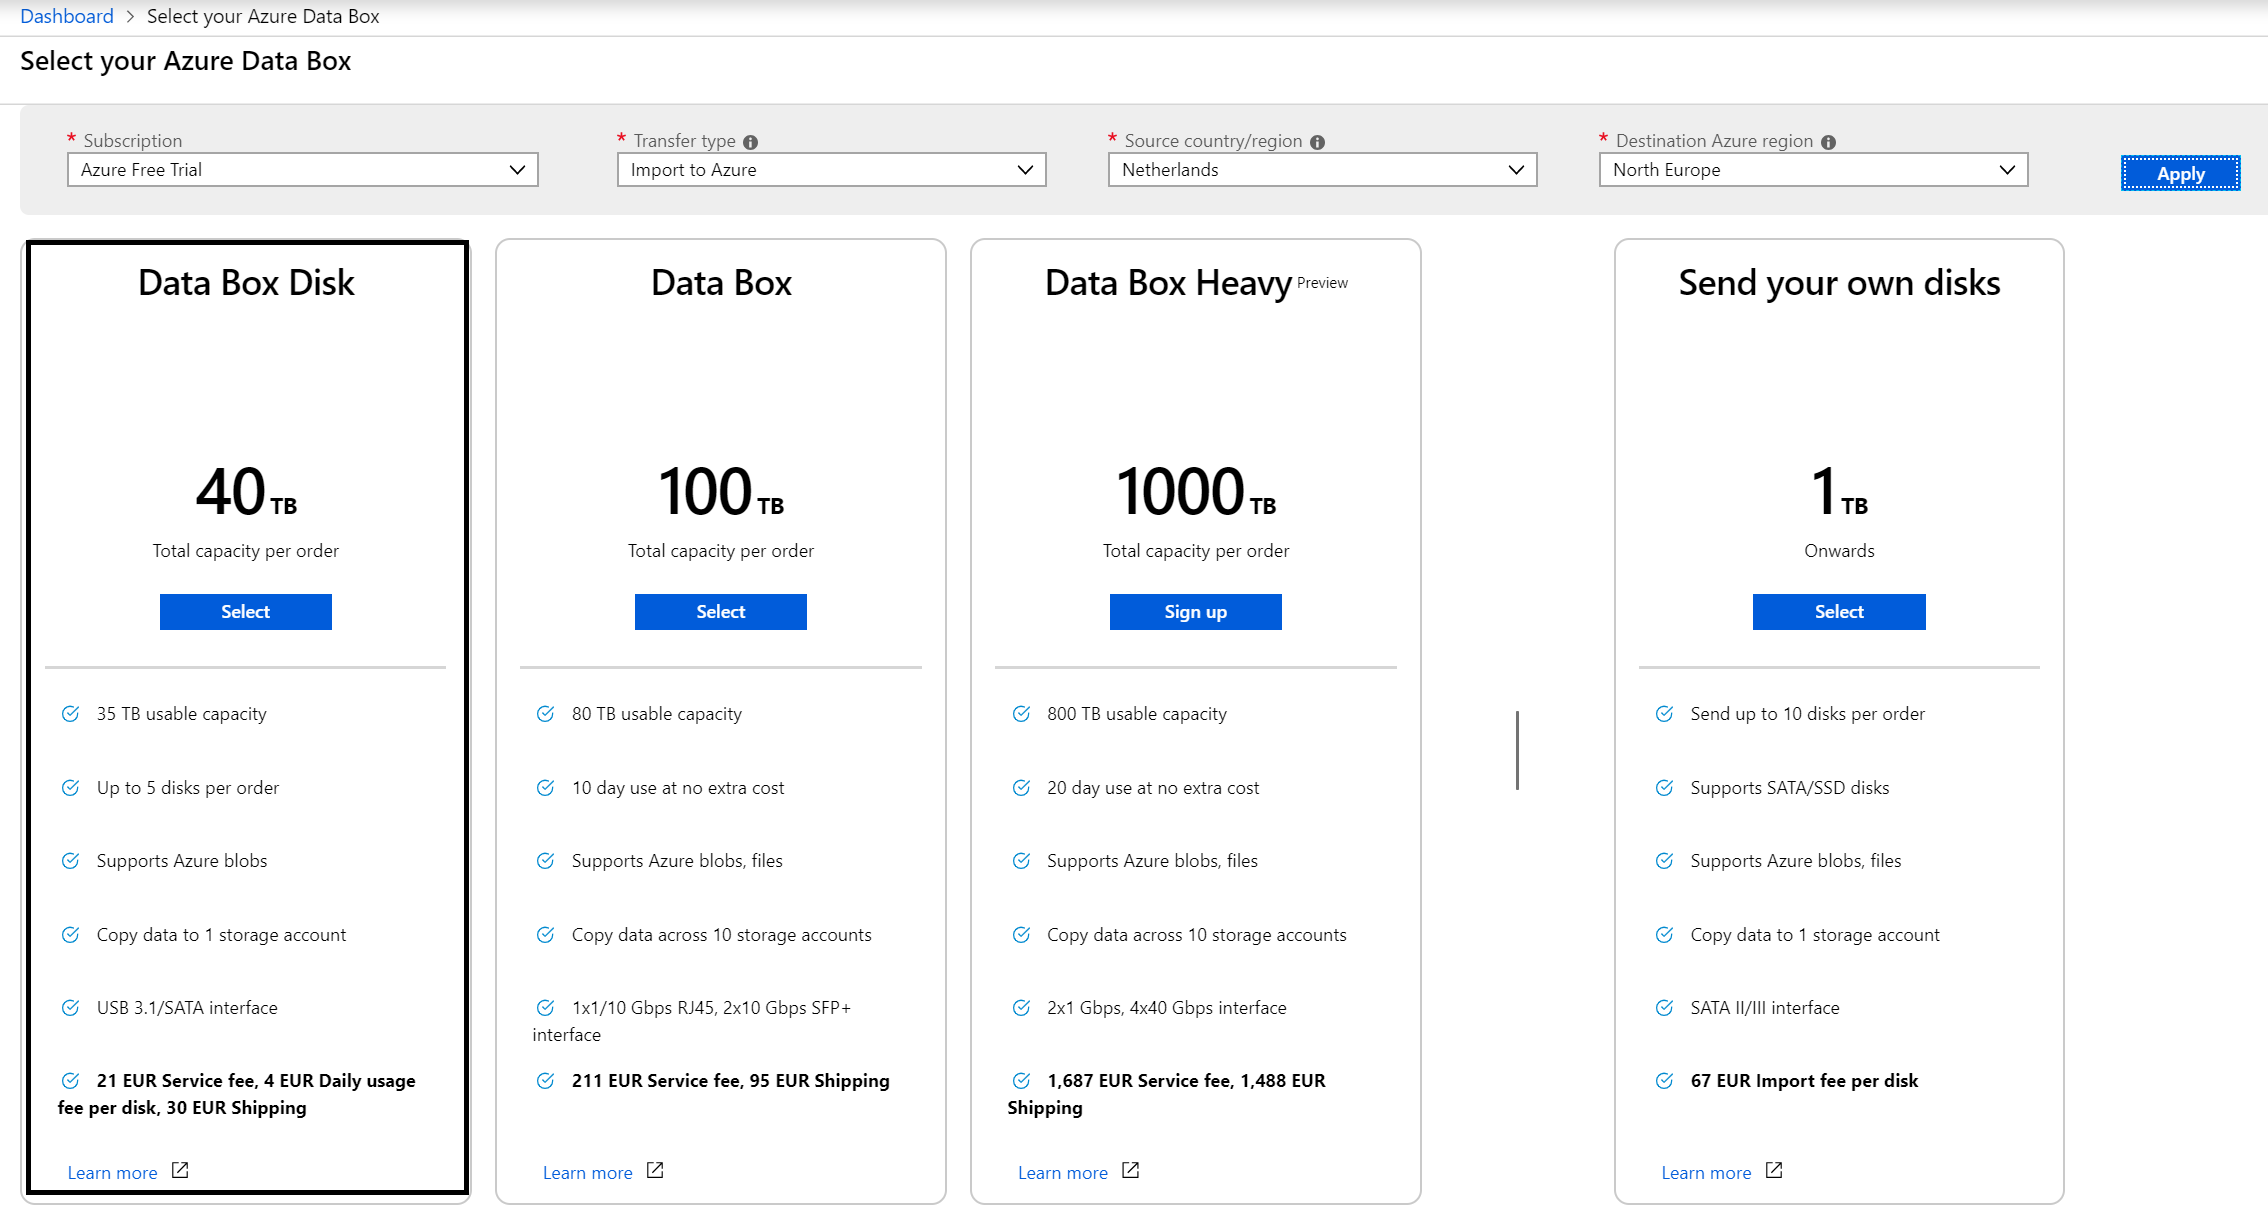 Microsoft Announces the General Availability of Azure Data Box Disk